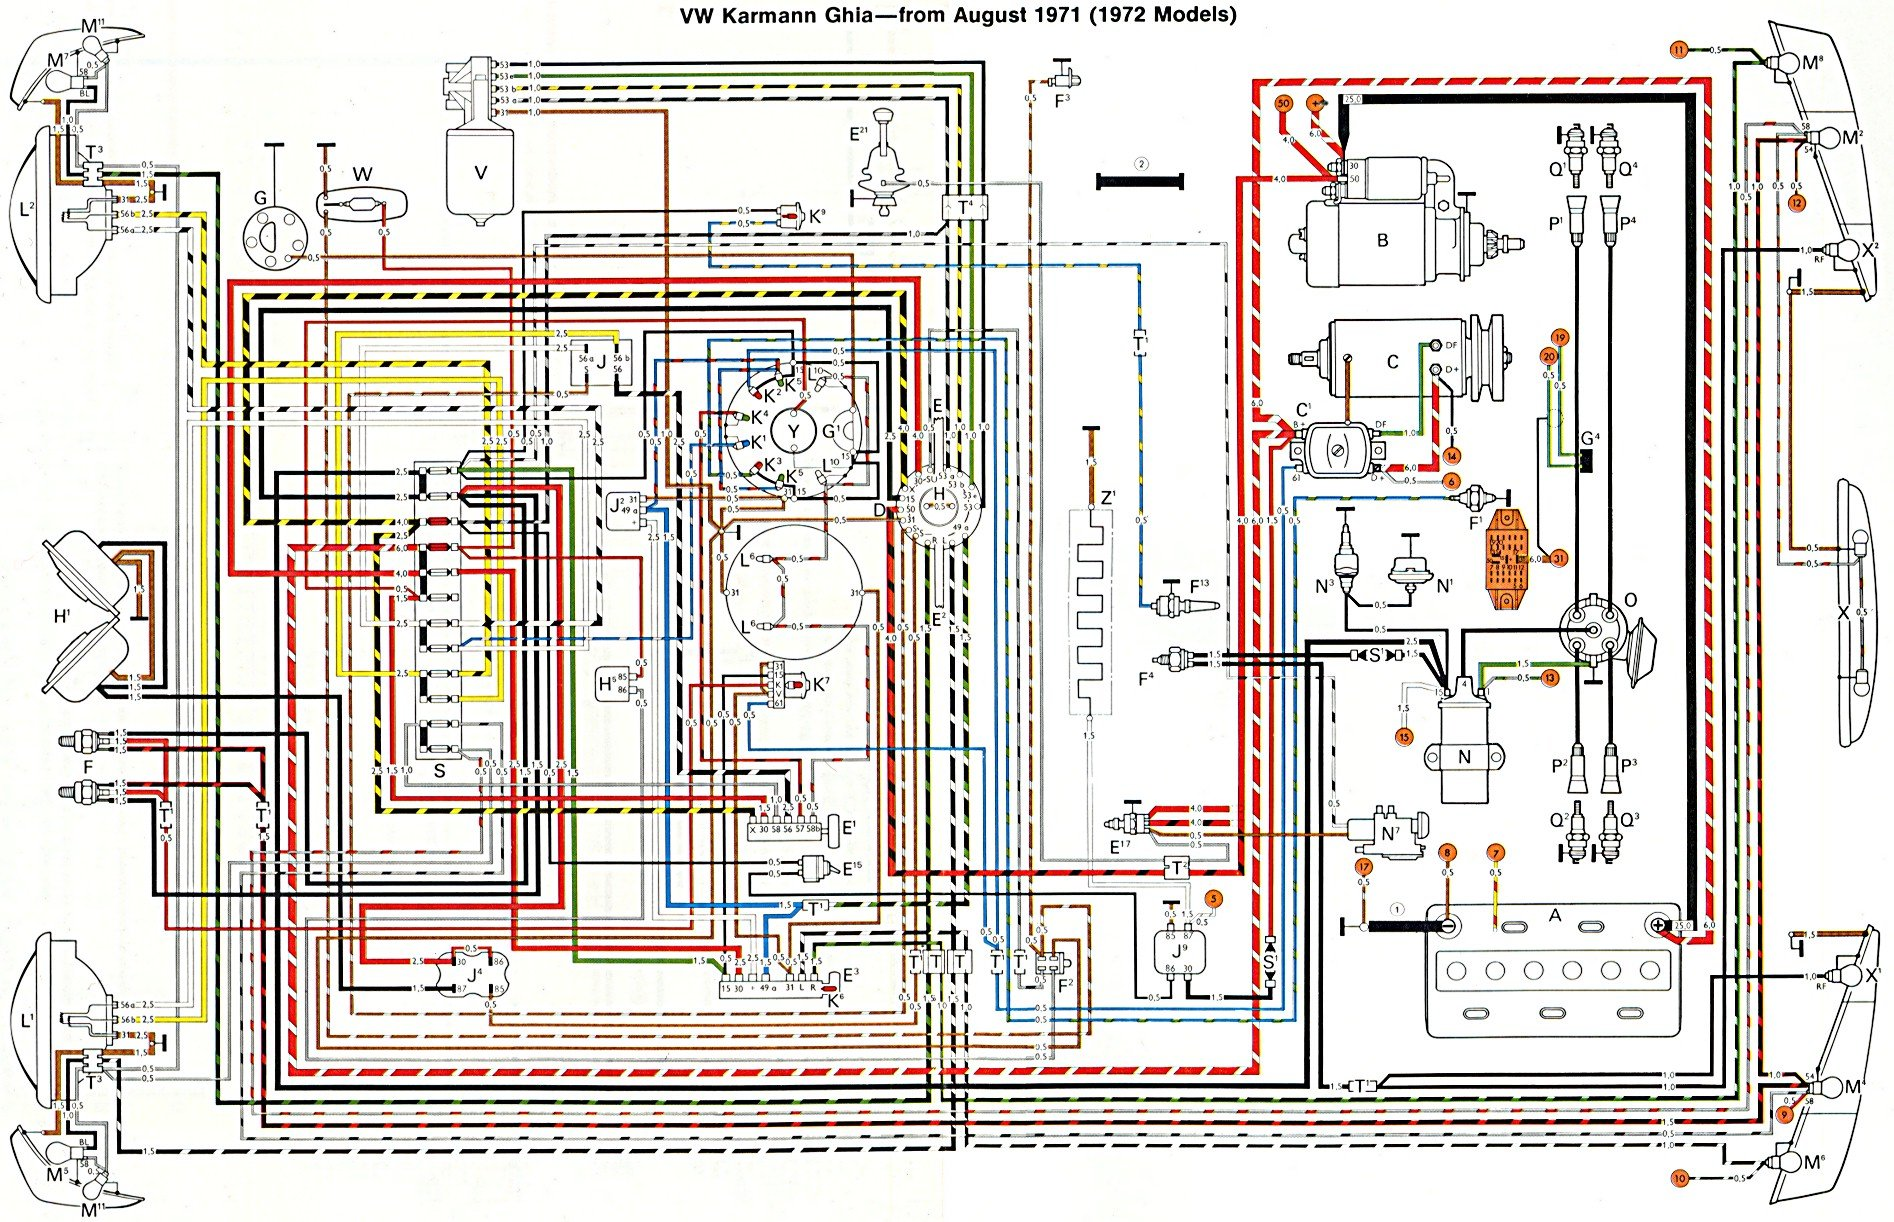 72 Vw Wiring Harness | Wiring Diagram  Best Images Of Vw Beetle Wiring Diagram on 72 vw generator wiring diagram, 1971 vw bus wiring diagram, 1972 vw wiring diagram, 1972 vw beetle engine diagram, 72 vw wiring light, vw bug wiring diagram, 72 vw bug convertible, volkswagen beetle diagram, 72 vw engine diagram, 72 karmann ghia wiring diagram, 72 vw beetle fuse diagram, vw bus engine diagram, air cooled vw wiring diagram, vw 1600 engine diagram, 1973 vw wiring diagram, vw alternator diagram, super beetle engine diagram, 72 toyota corolla wiring diagram,